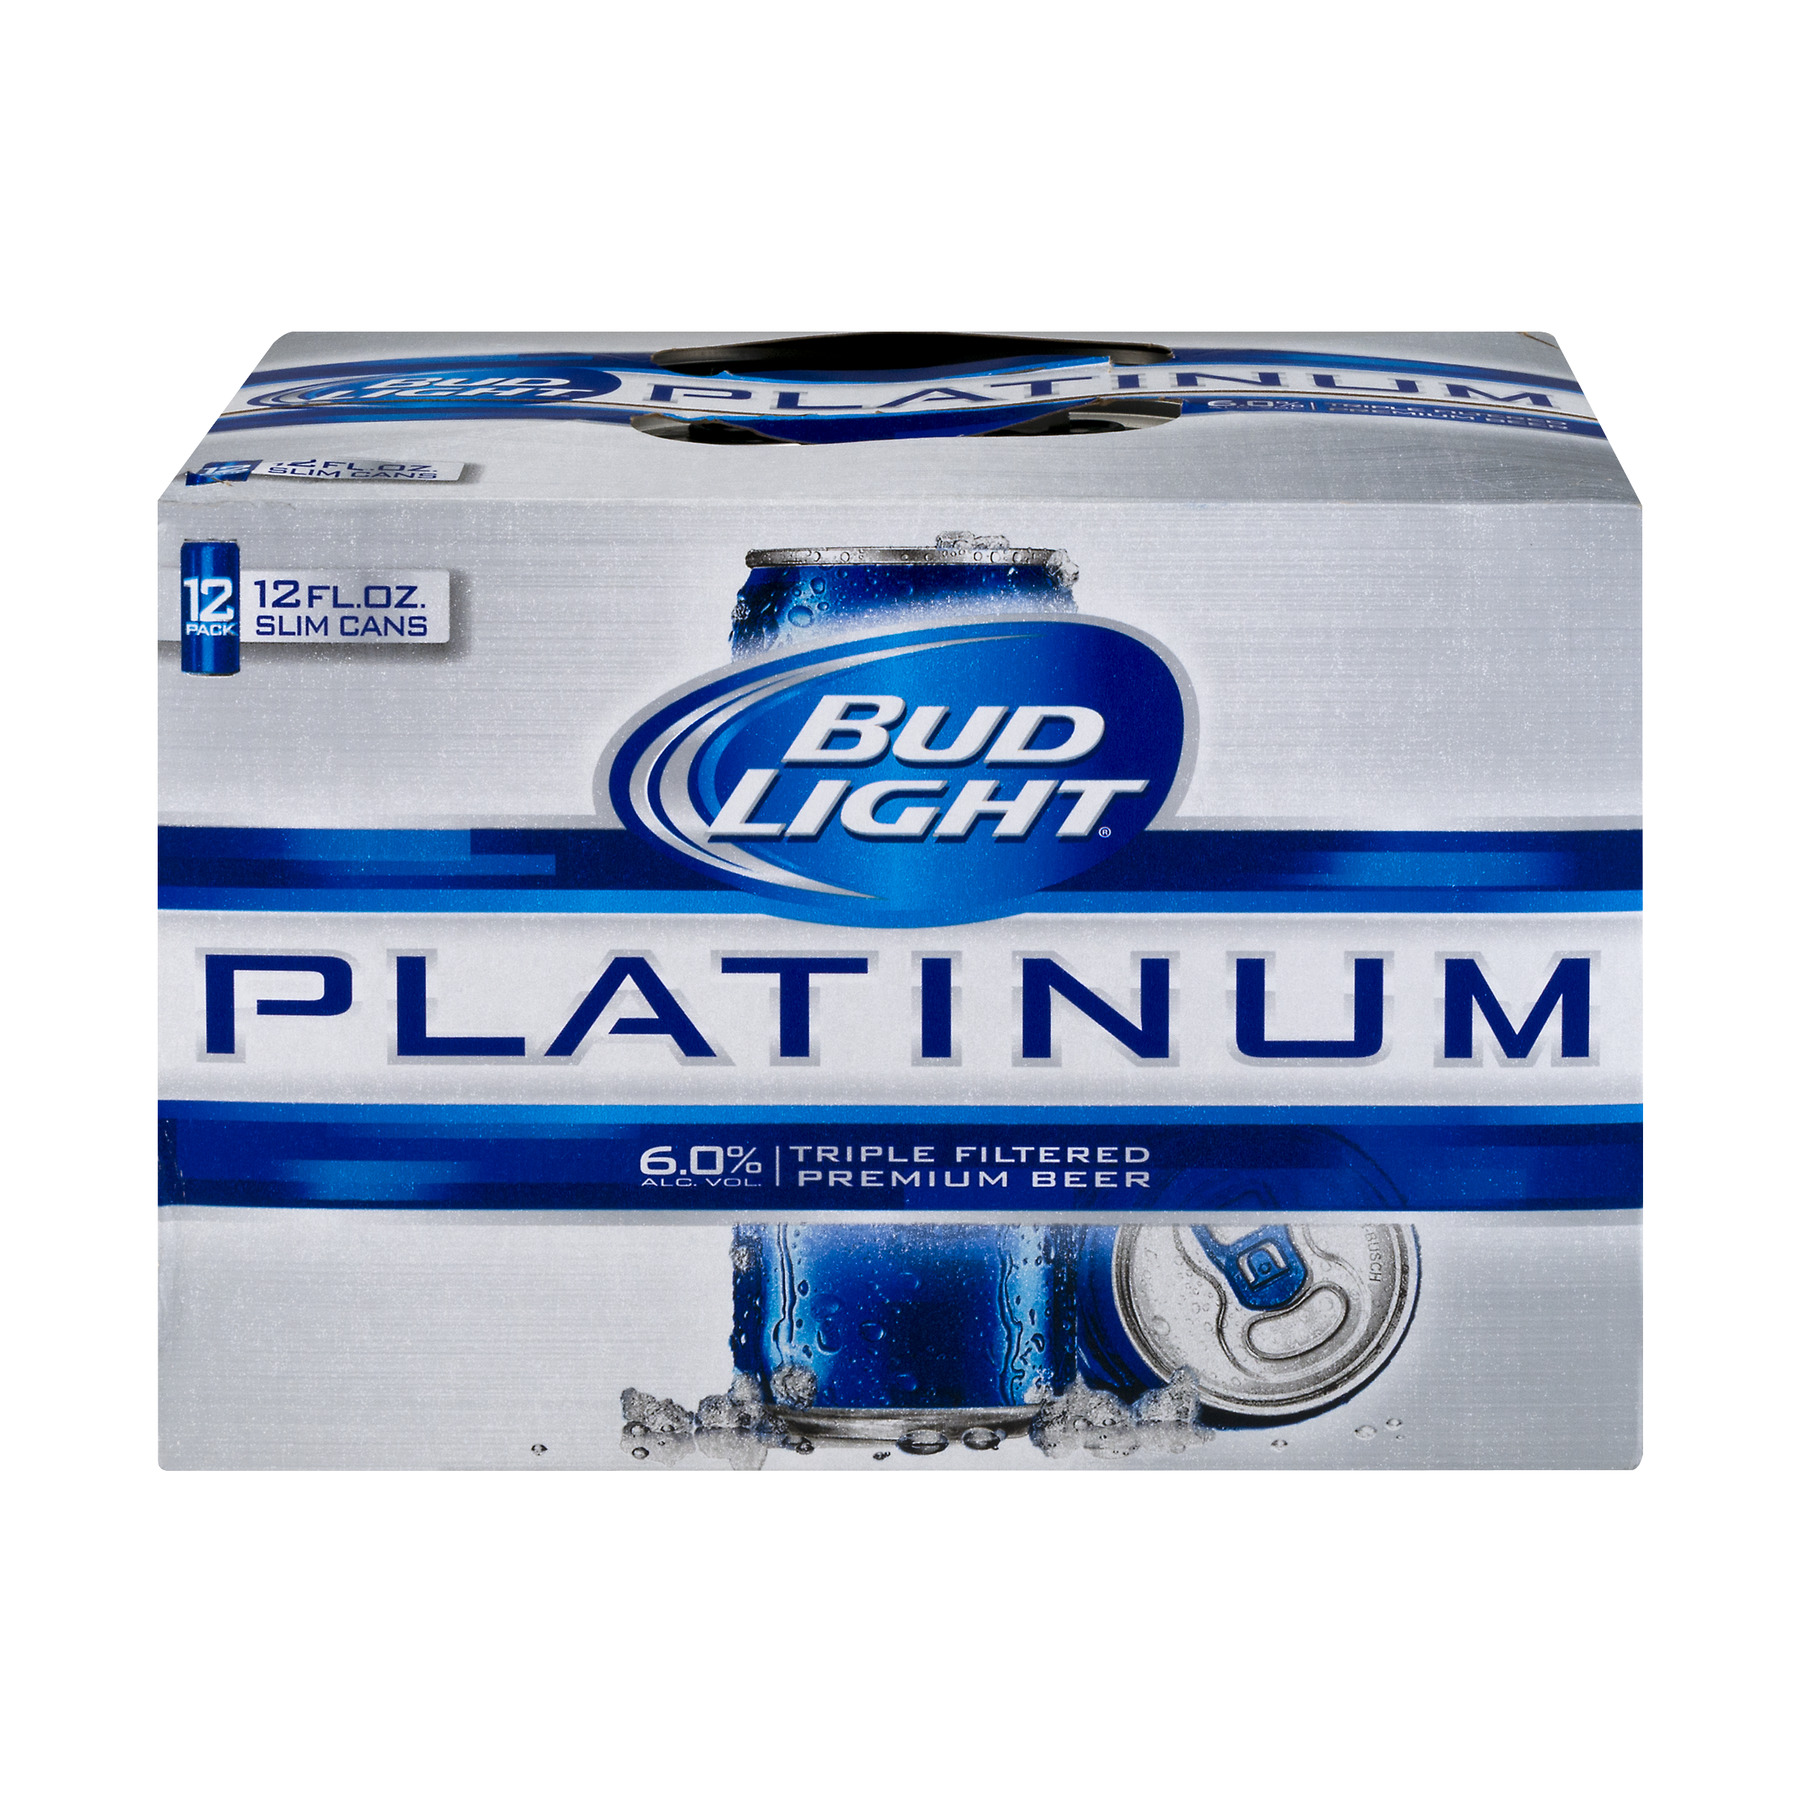 this quite platinum is bottles bud pin the light color i love good as beer